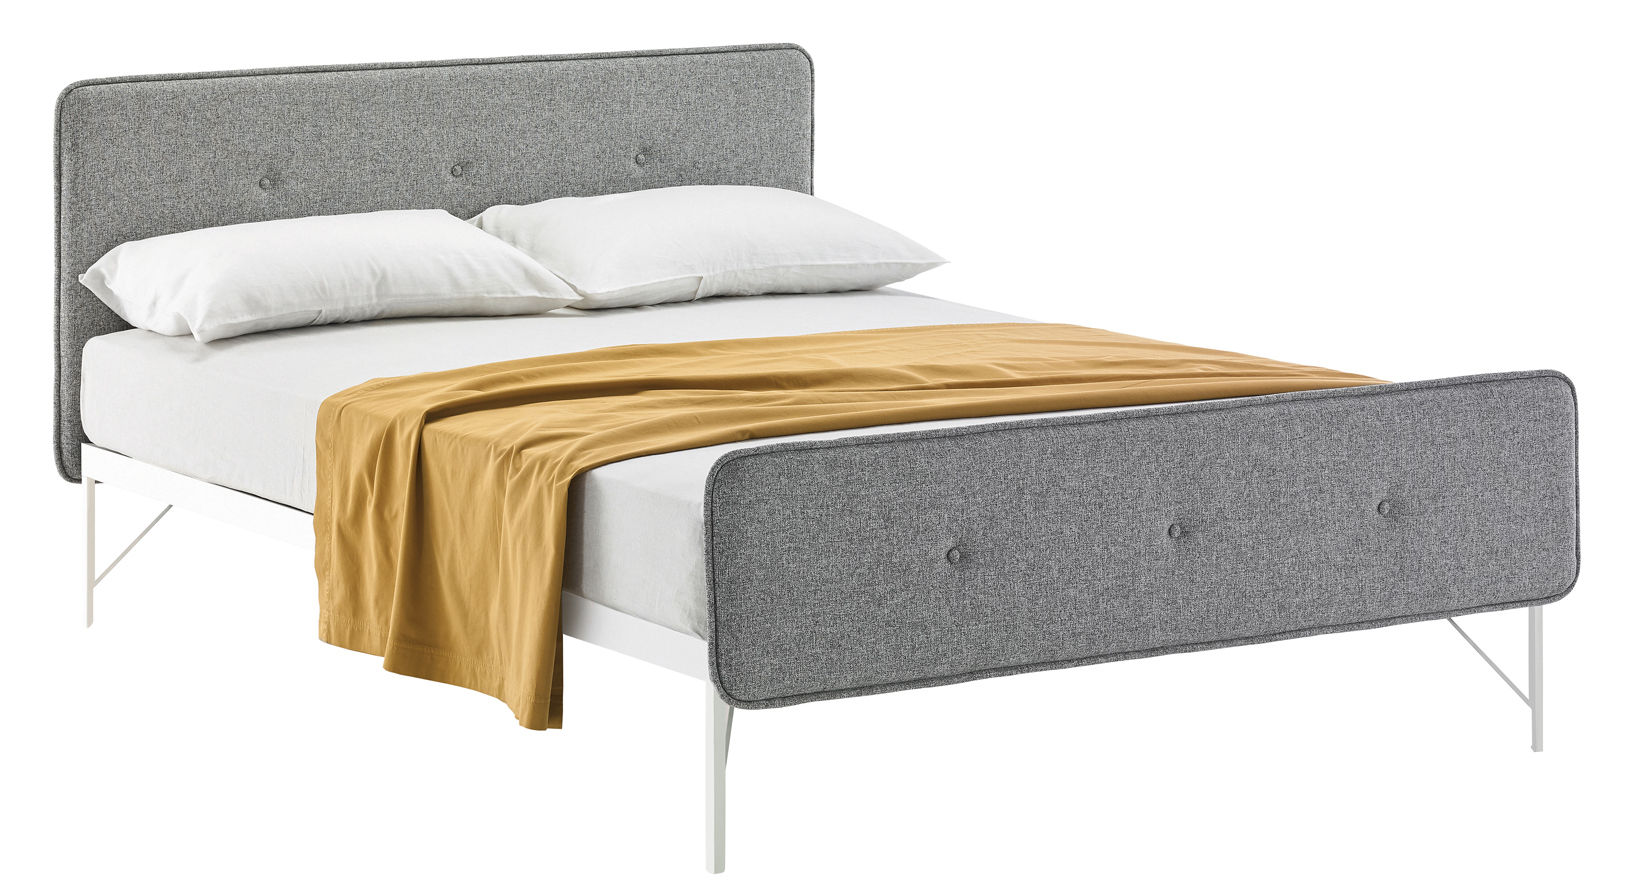 lit double hotel royal pour matelas 160 x 200 tissu gris clair zanotta. Black Bedroom Furniture Sets. Home Design Ideas